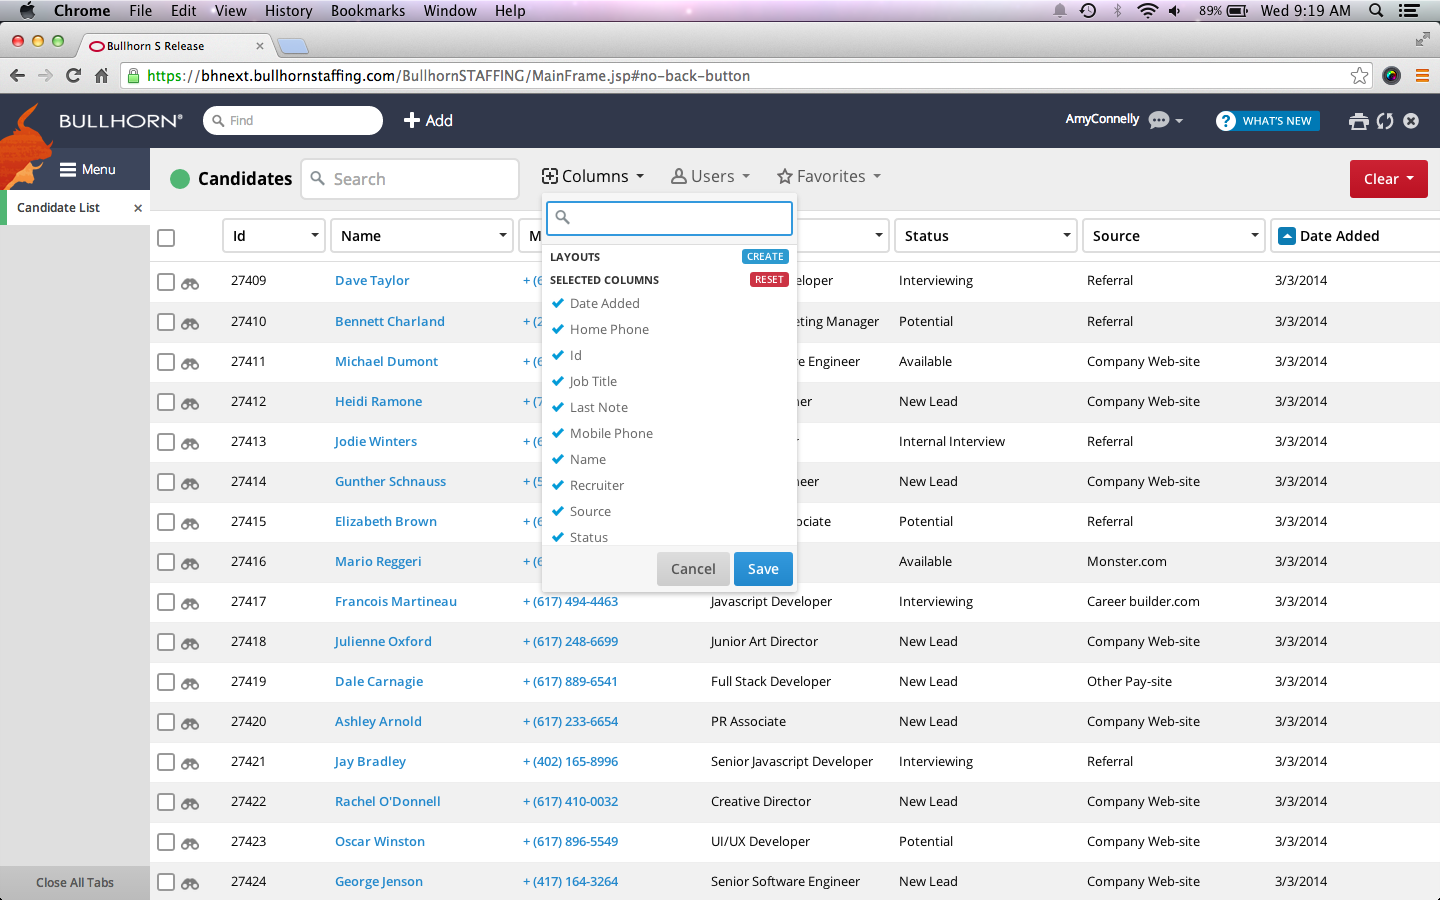 Easily configure views and columns